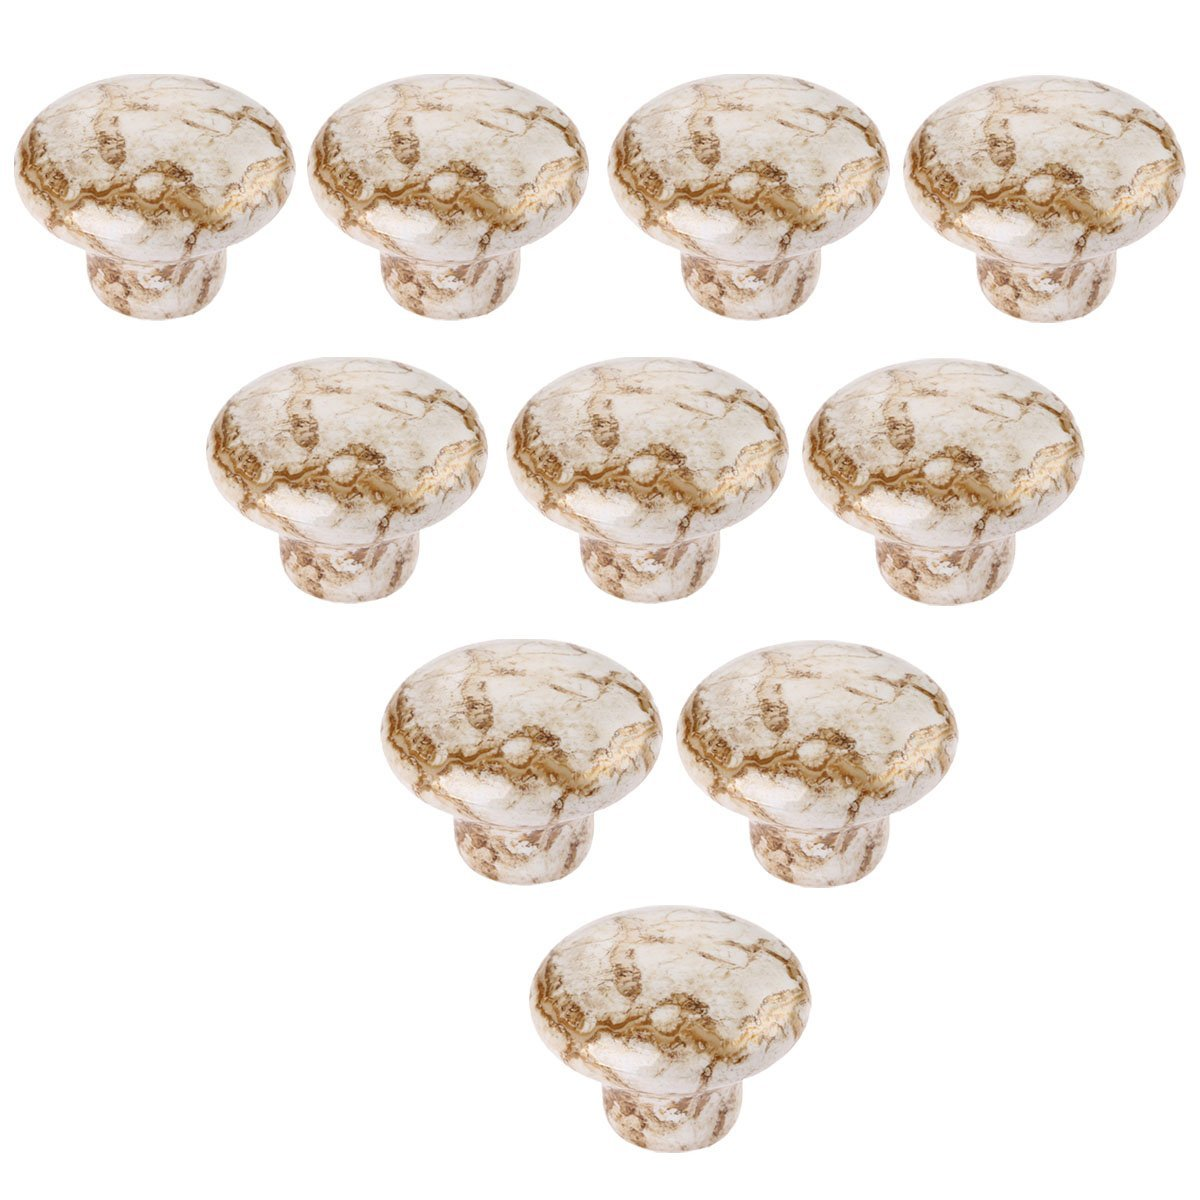 Choubao Antique Furniture Handles Marble Vein Knobs and Handles Ceramic Handles for Kitchen Cupboards Cabinet Door knobs Drawer Pulls - 10pcs